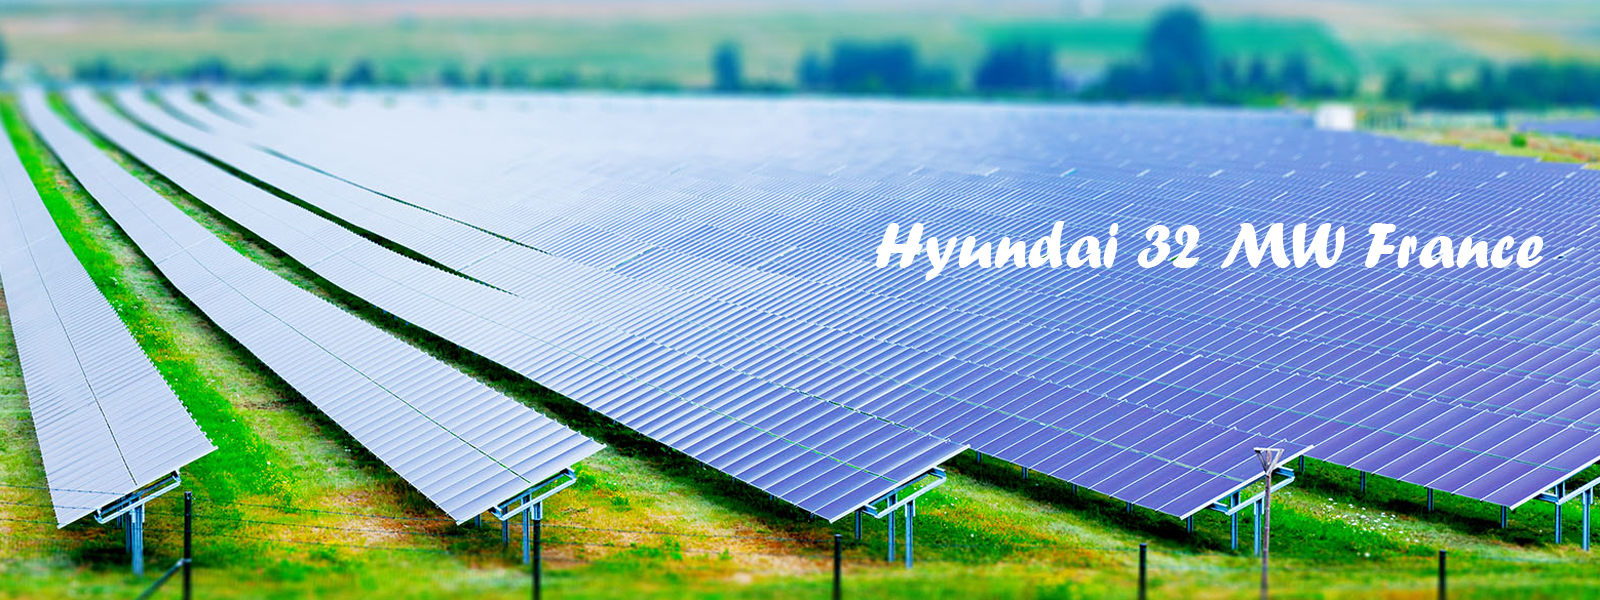 Hyundai-32Mw-France